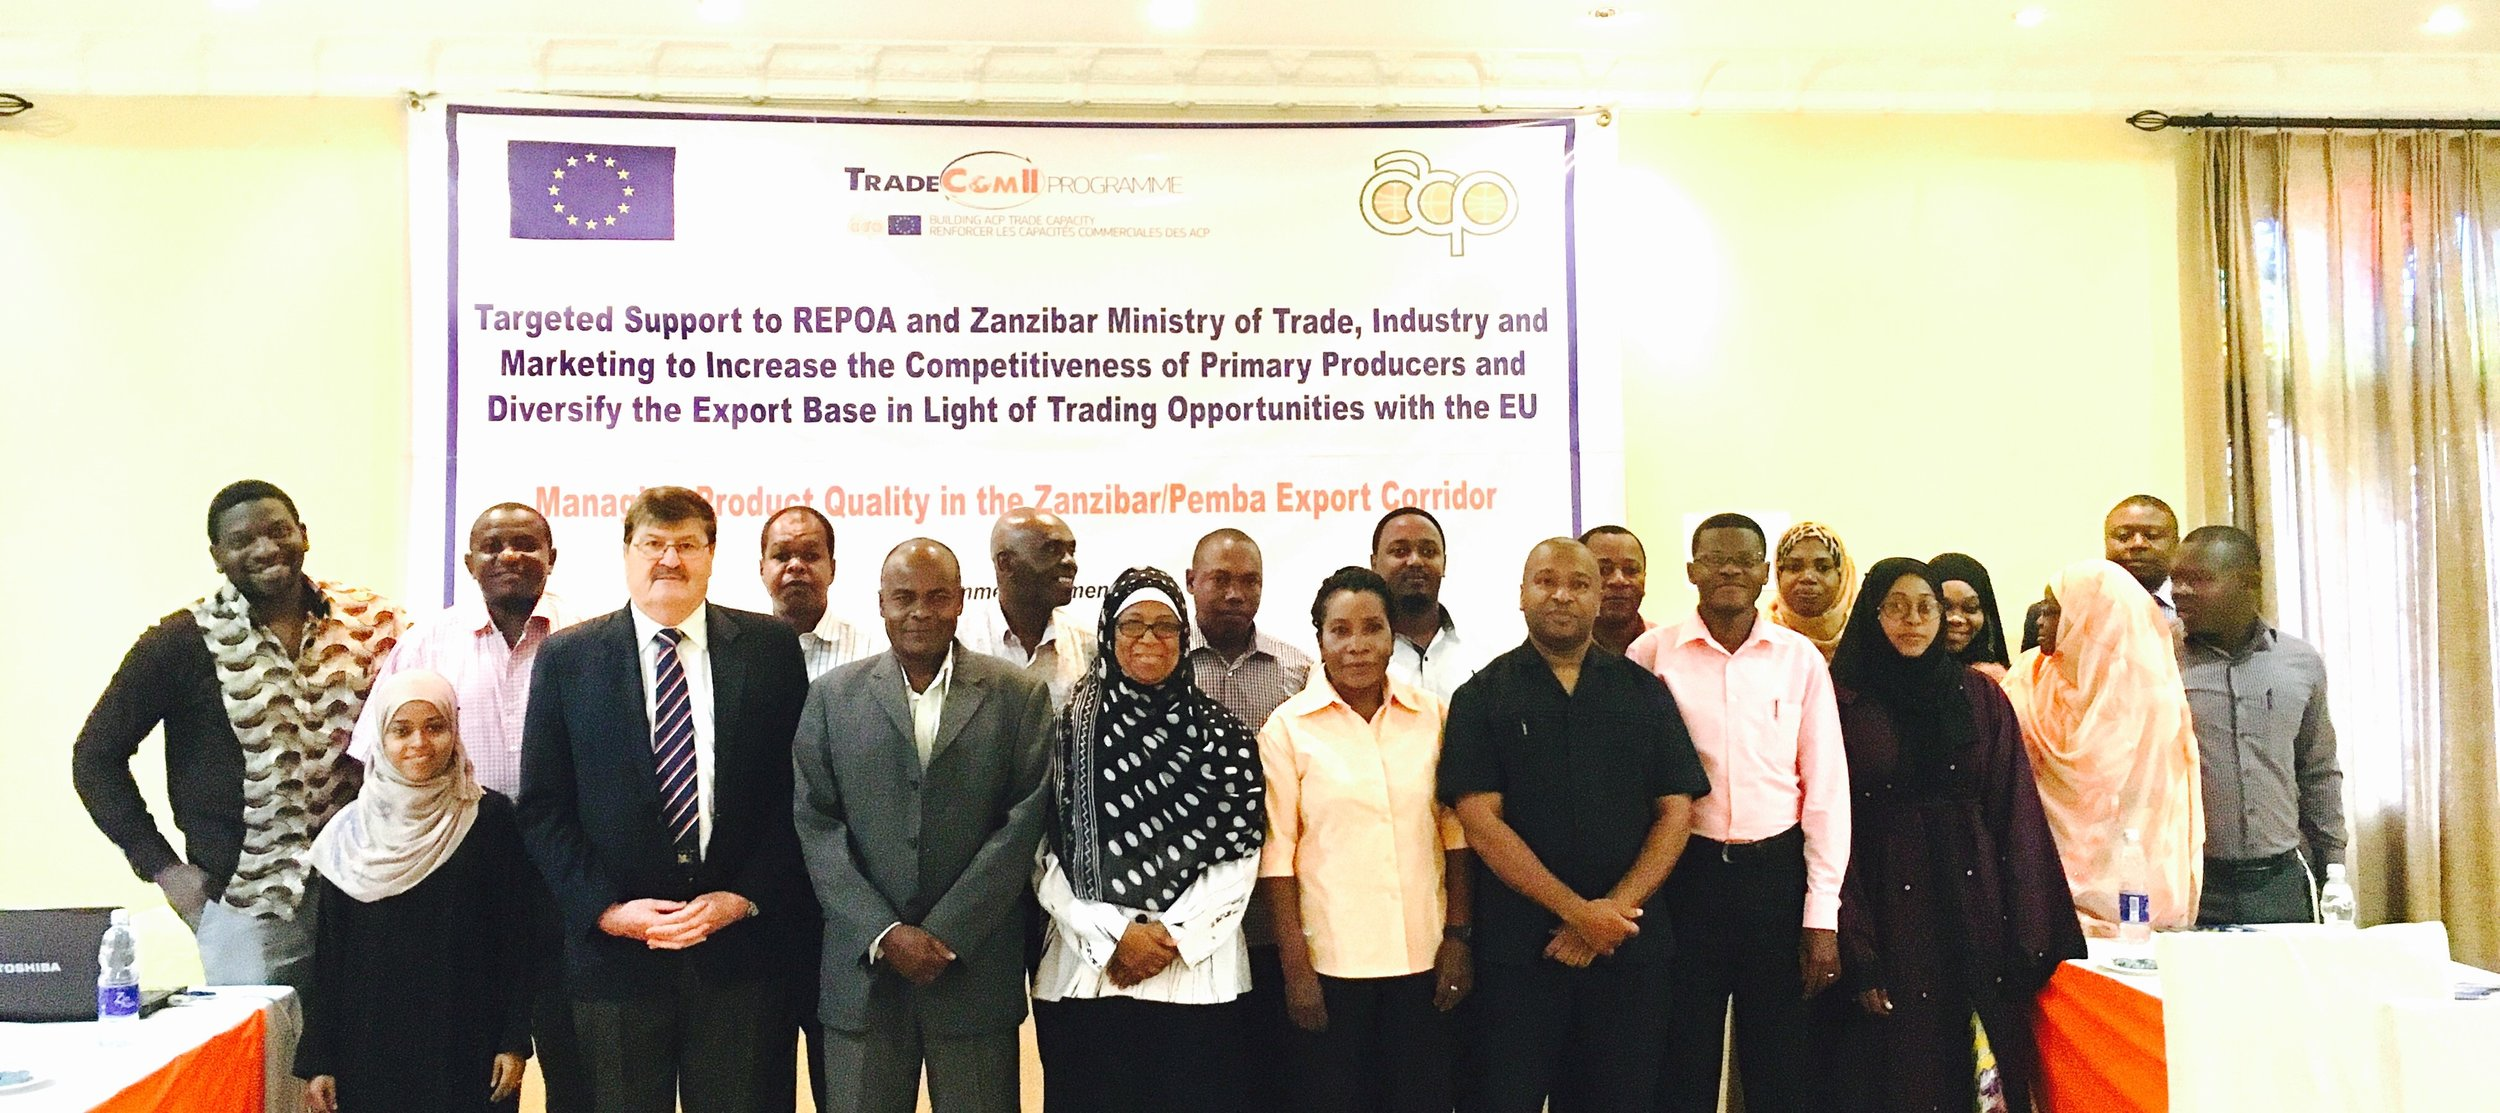 Participants at the workshop on quality management for Zanzibar trade support institutions, which was organised by Landell Mills